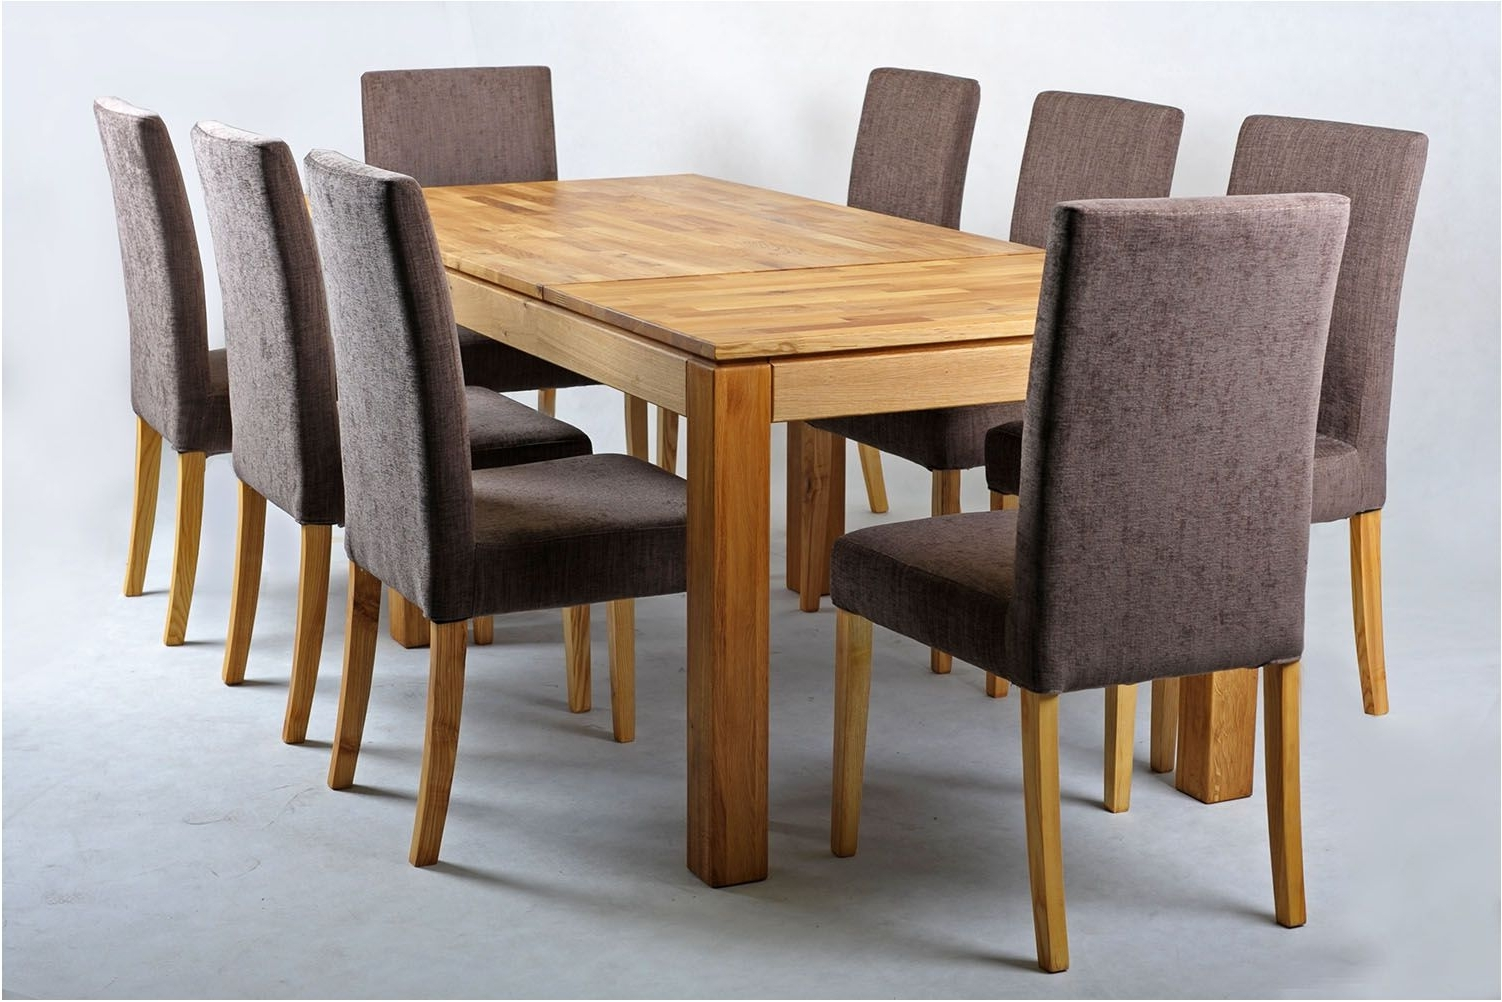 Terrific Solid Oak Extending Dining Table And Chairs Set Home Goods For Famous Extending Oak Dining Tables And Chairs (View 8 of 25)